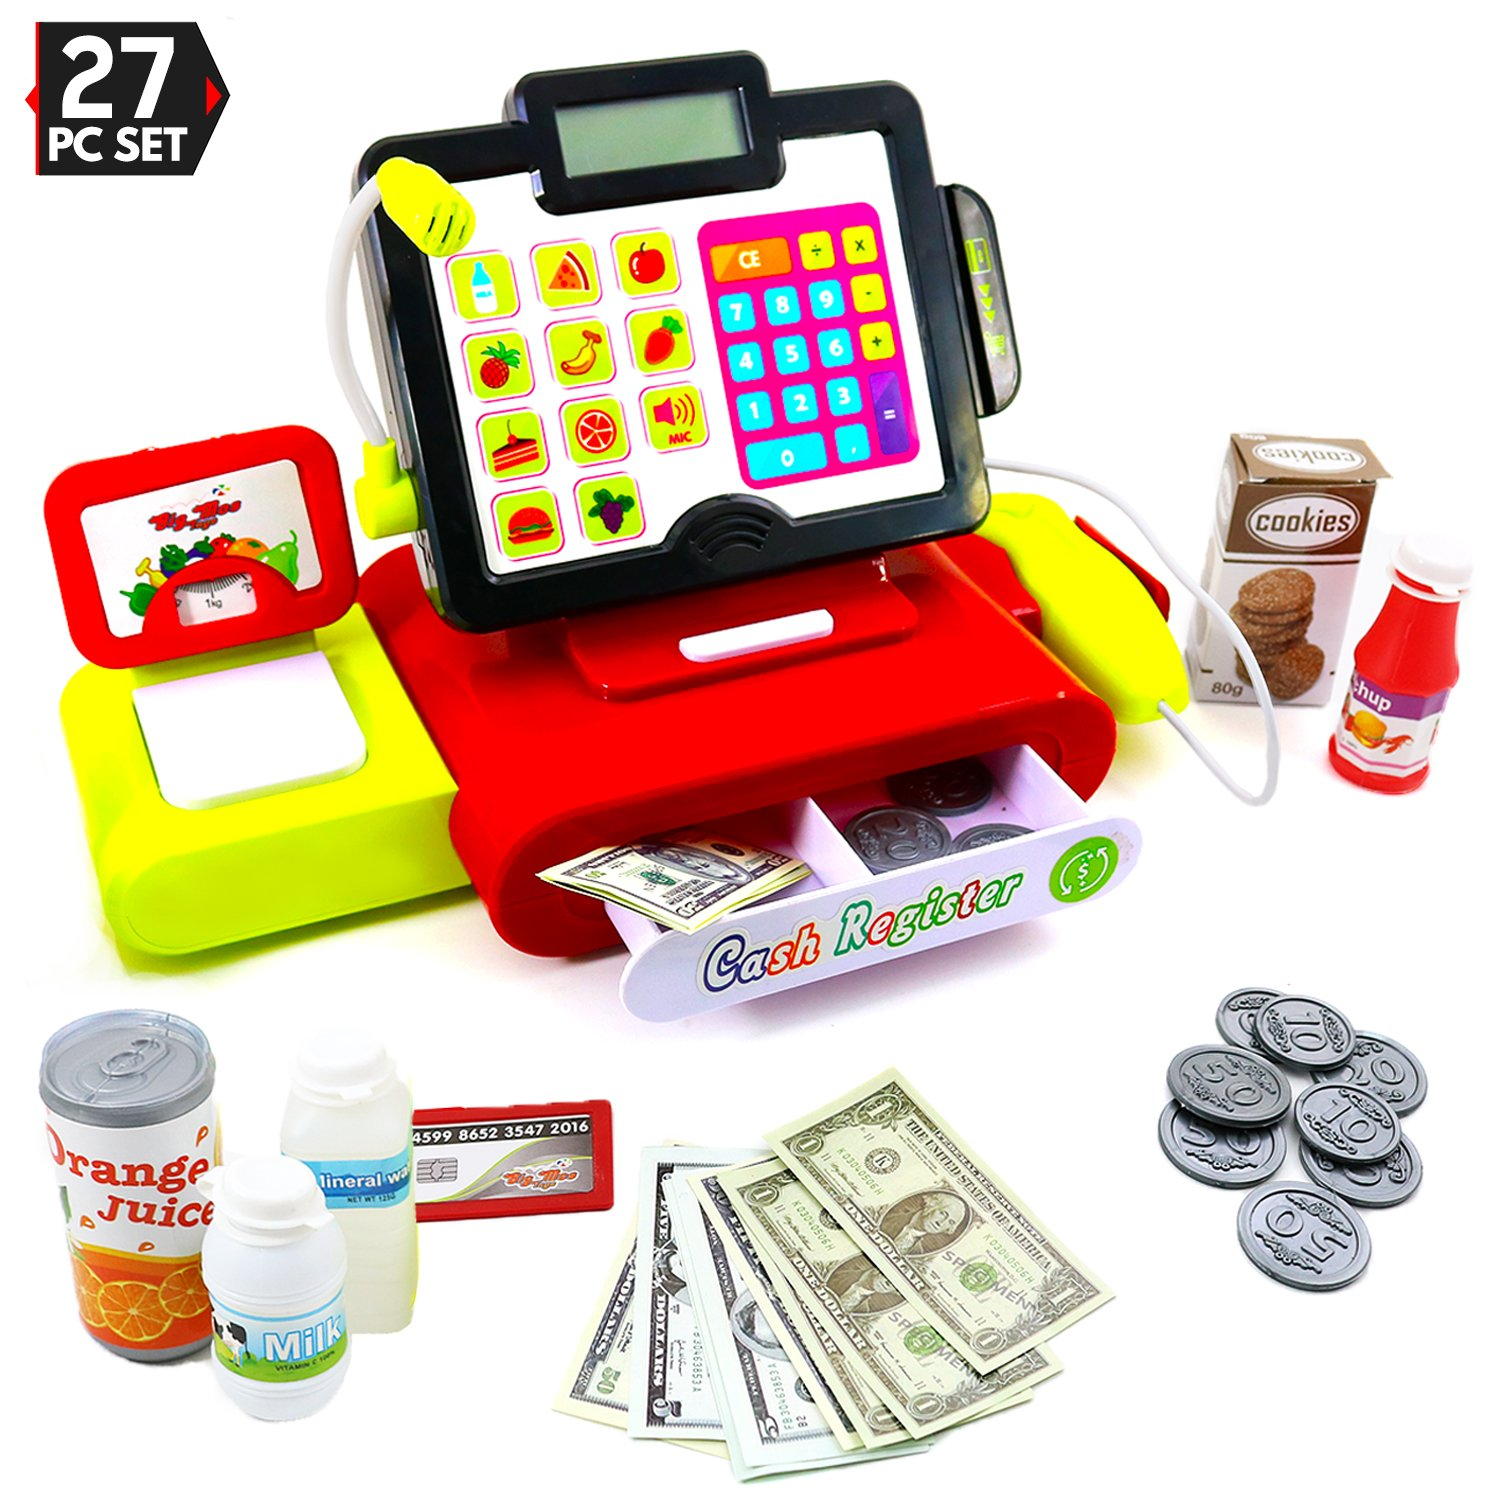 Big Mo's Toys 27 Piece Cash Register Set with Pretend Play Food, Money, Lights and Sounds by Big Mo's Toys